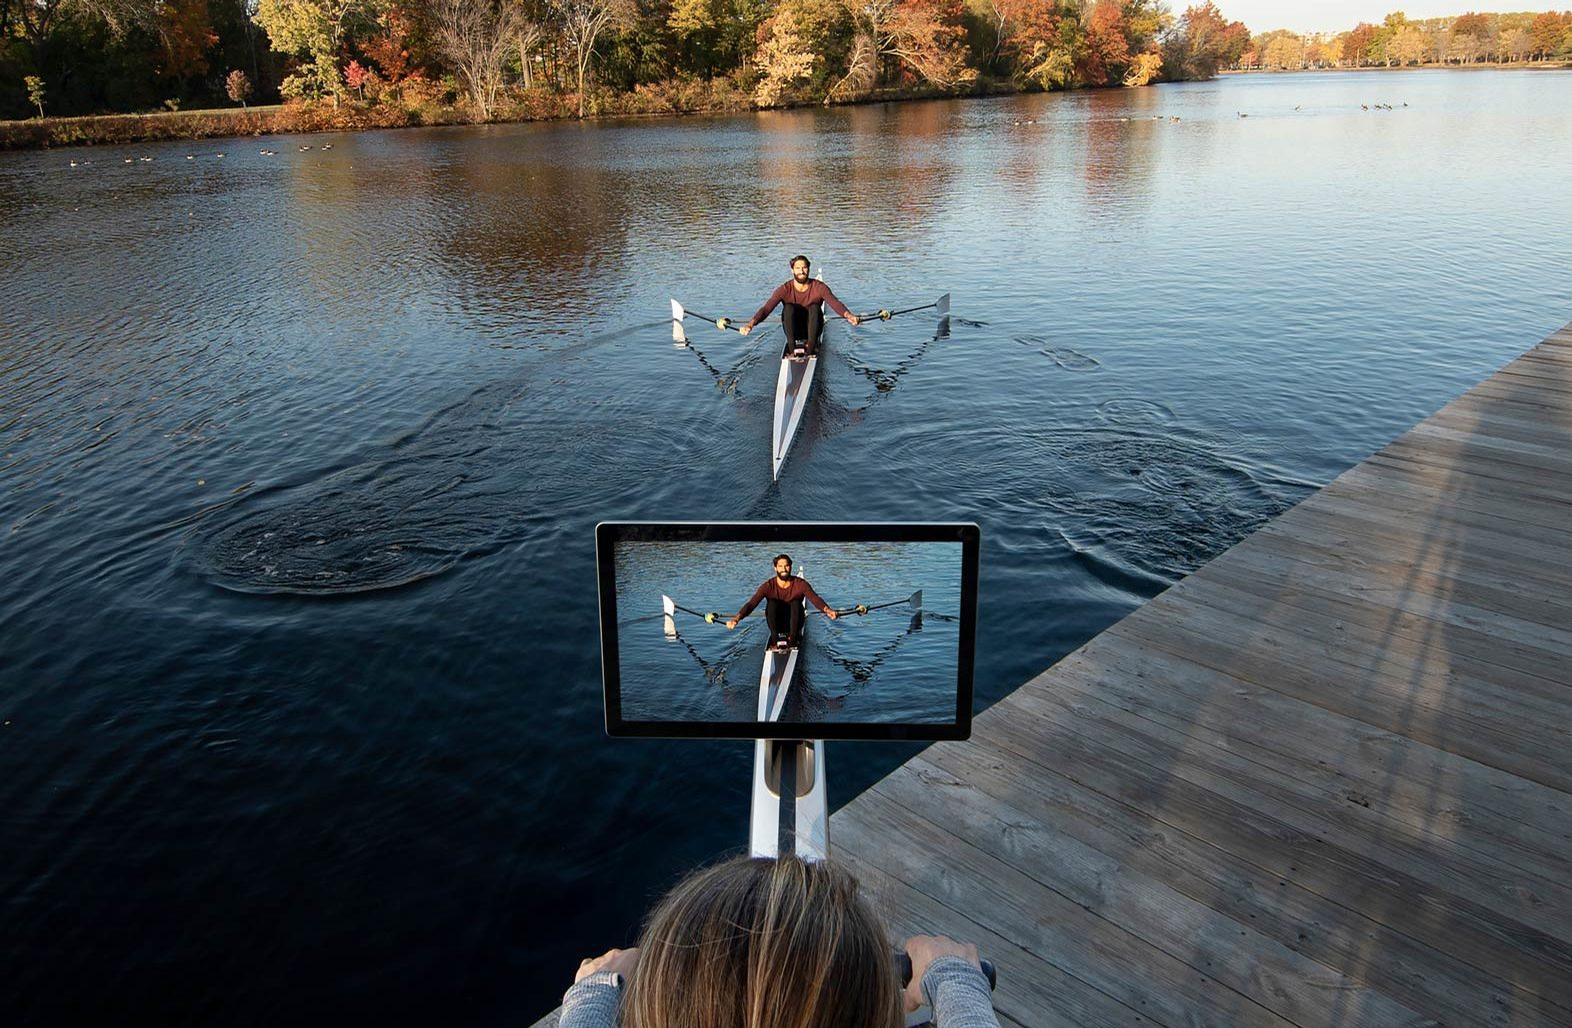 Hydrow was founded in 2017 by Bruce Smith, an entrepreneur and coach of the US National Team Rowing team